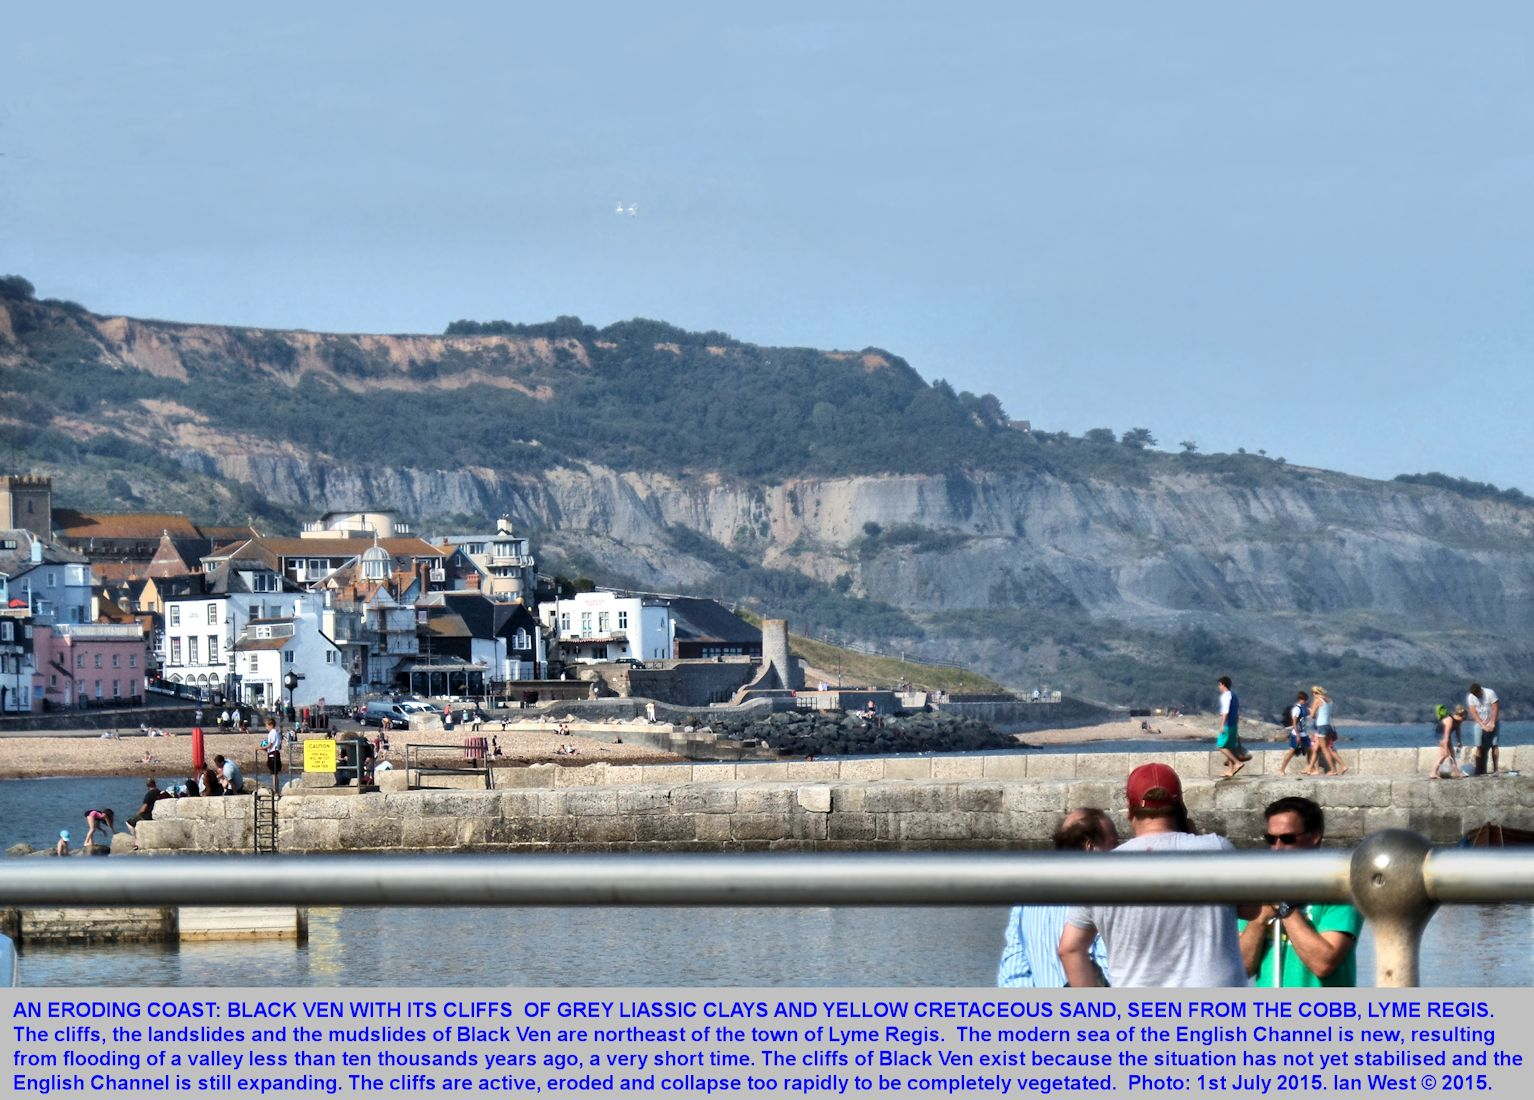 The eroding cliff of Black Ven seen from the Cobb and behind the town of Lyme Regis, Dorset, June 2015